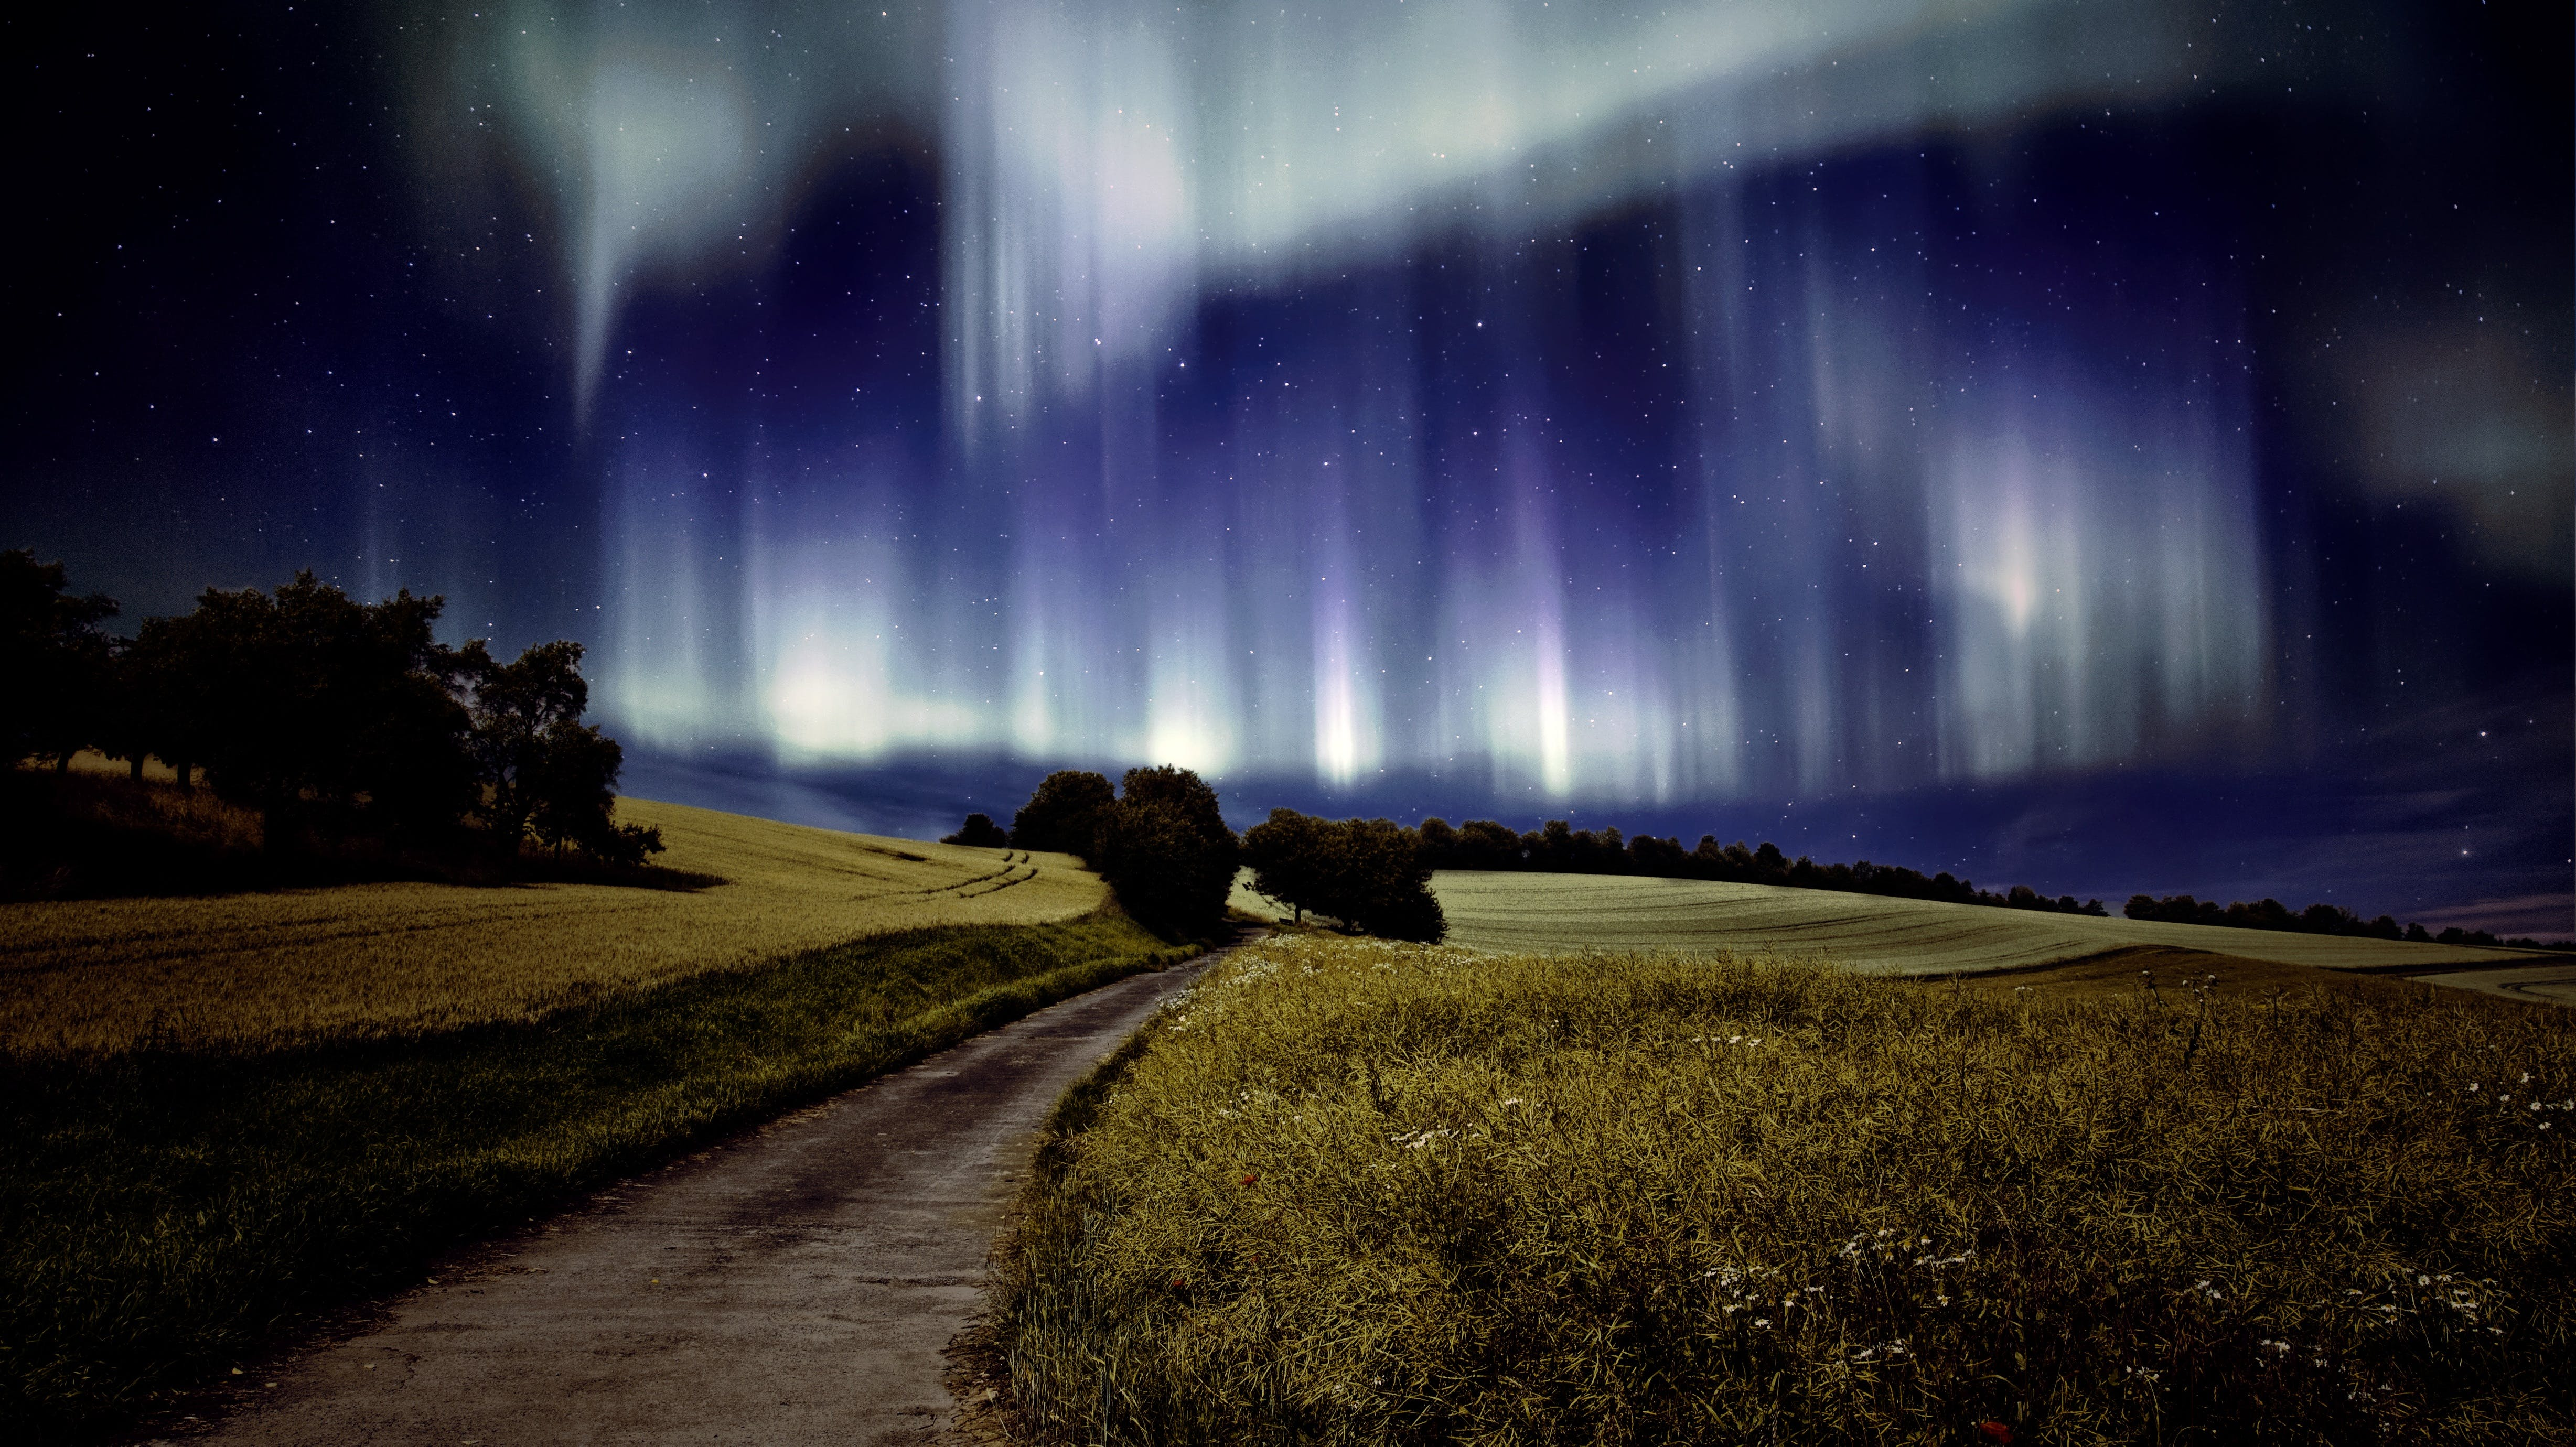 Photography of Northern Lights over Grass Field